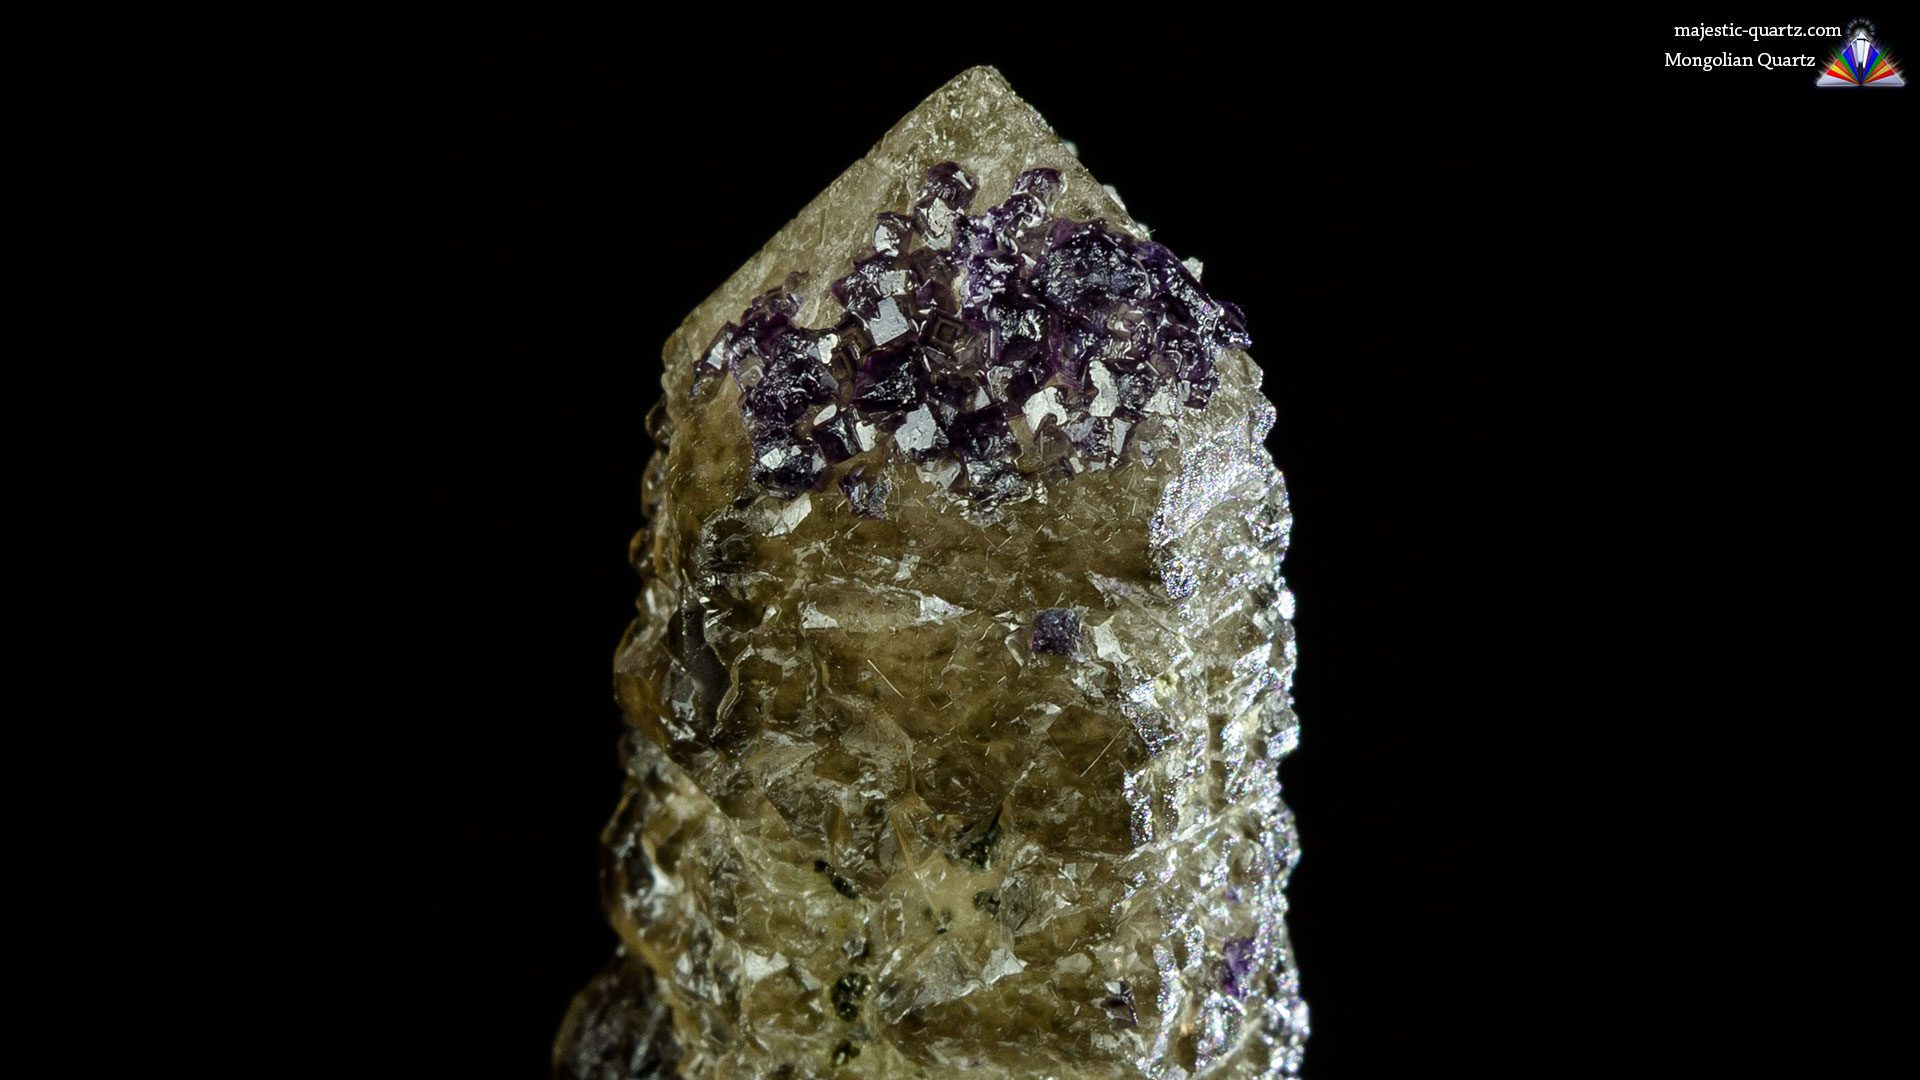 Mongolian Quartz Properties and Meaning- Photograph by Anthony Bradford